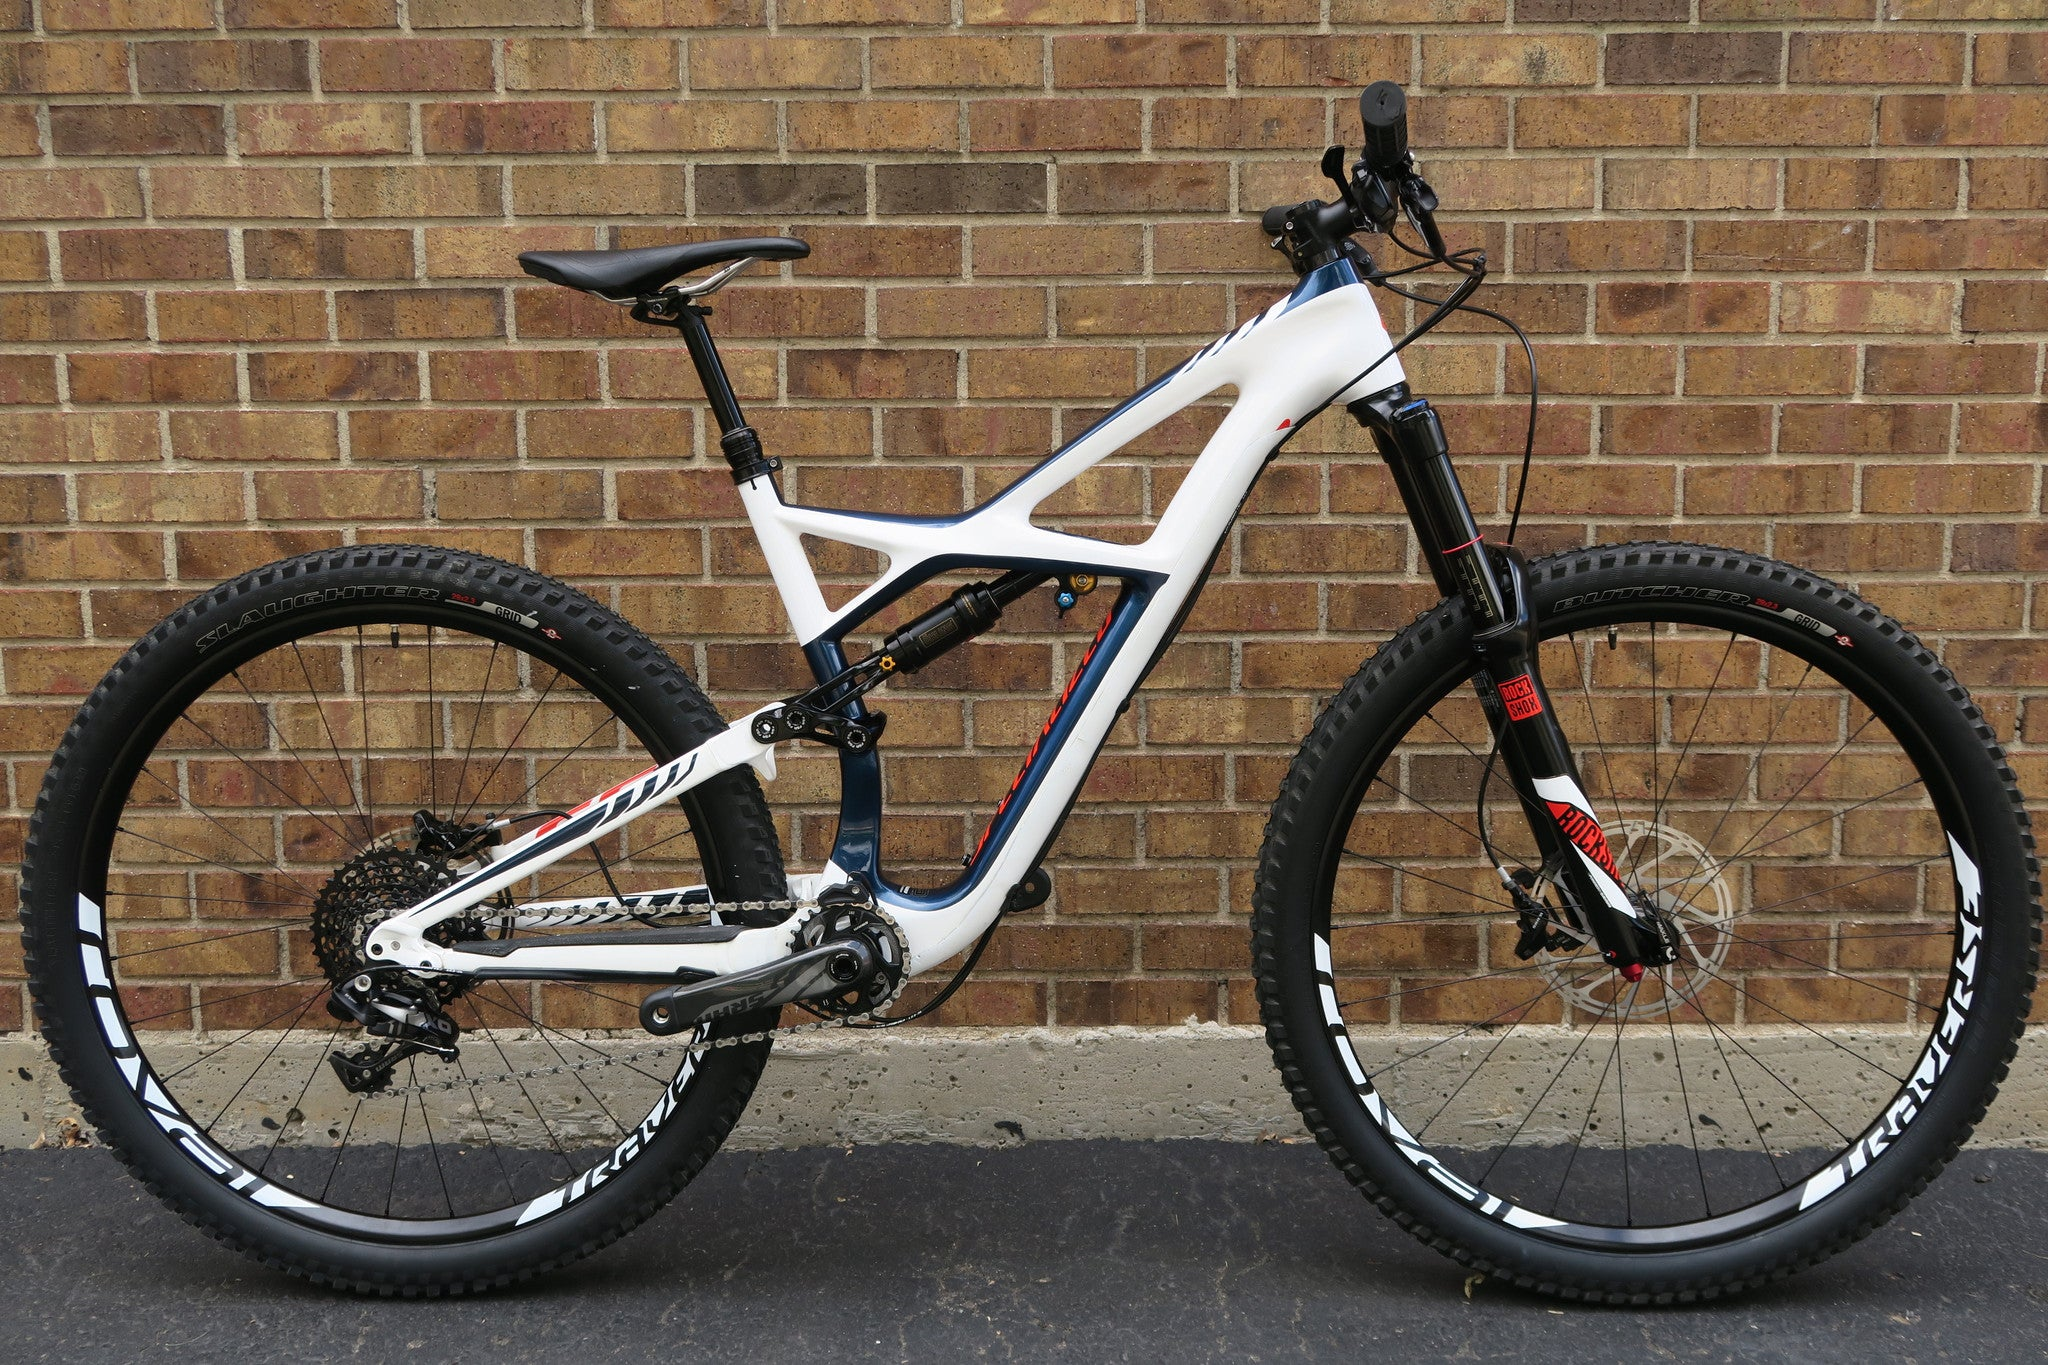 2016 SPECIALIZED ENDURO EXPERT CARBON 29